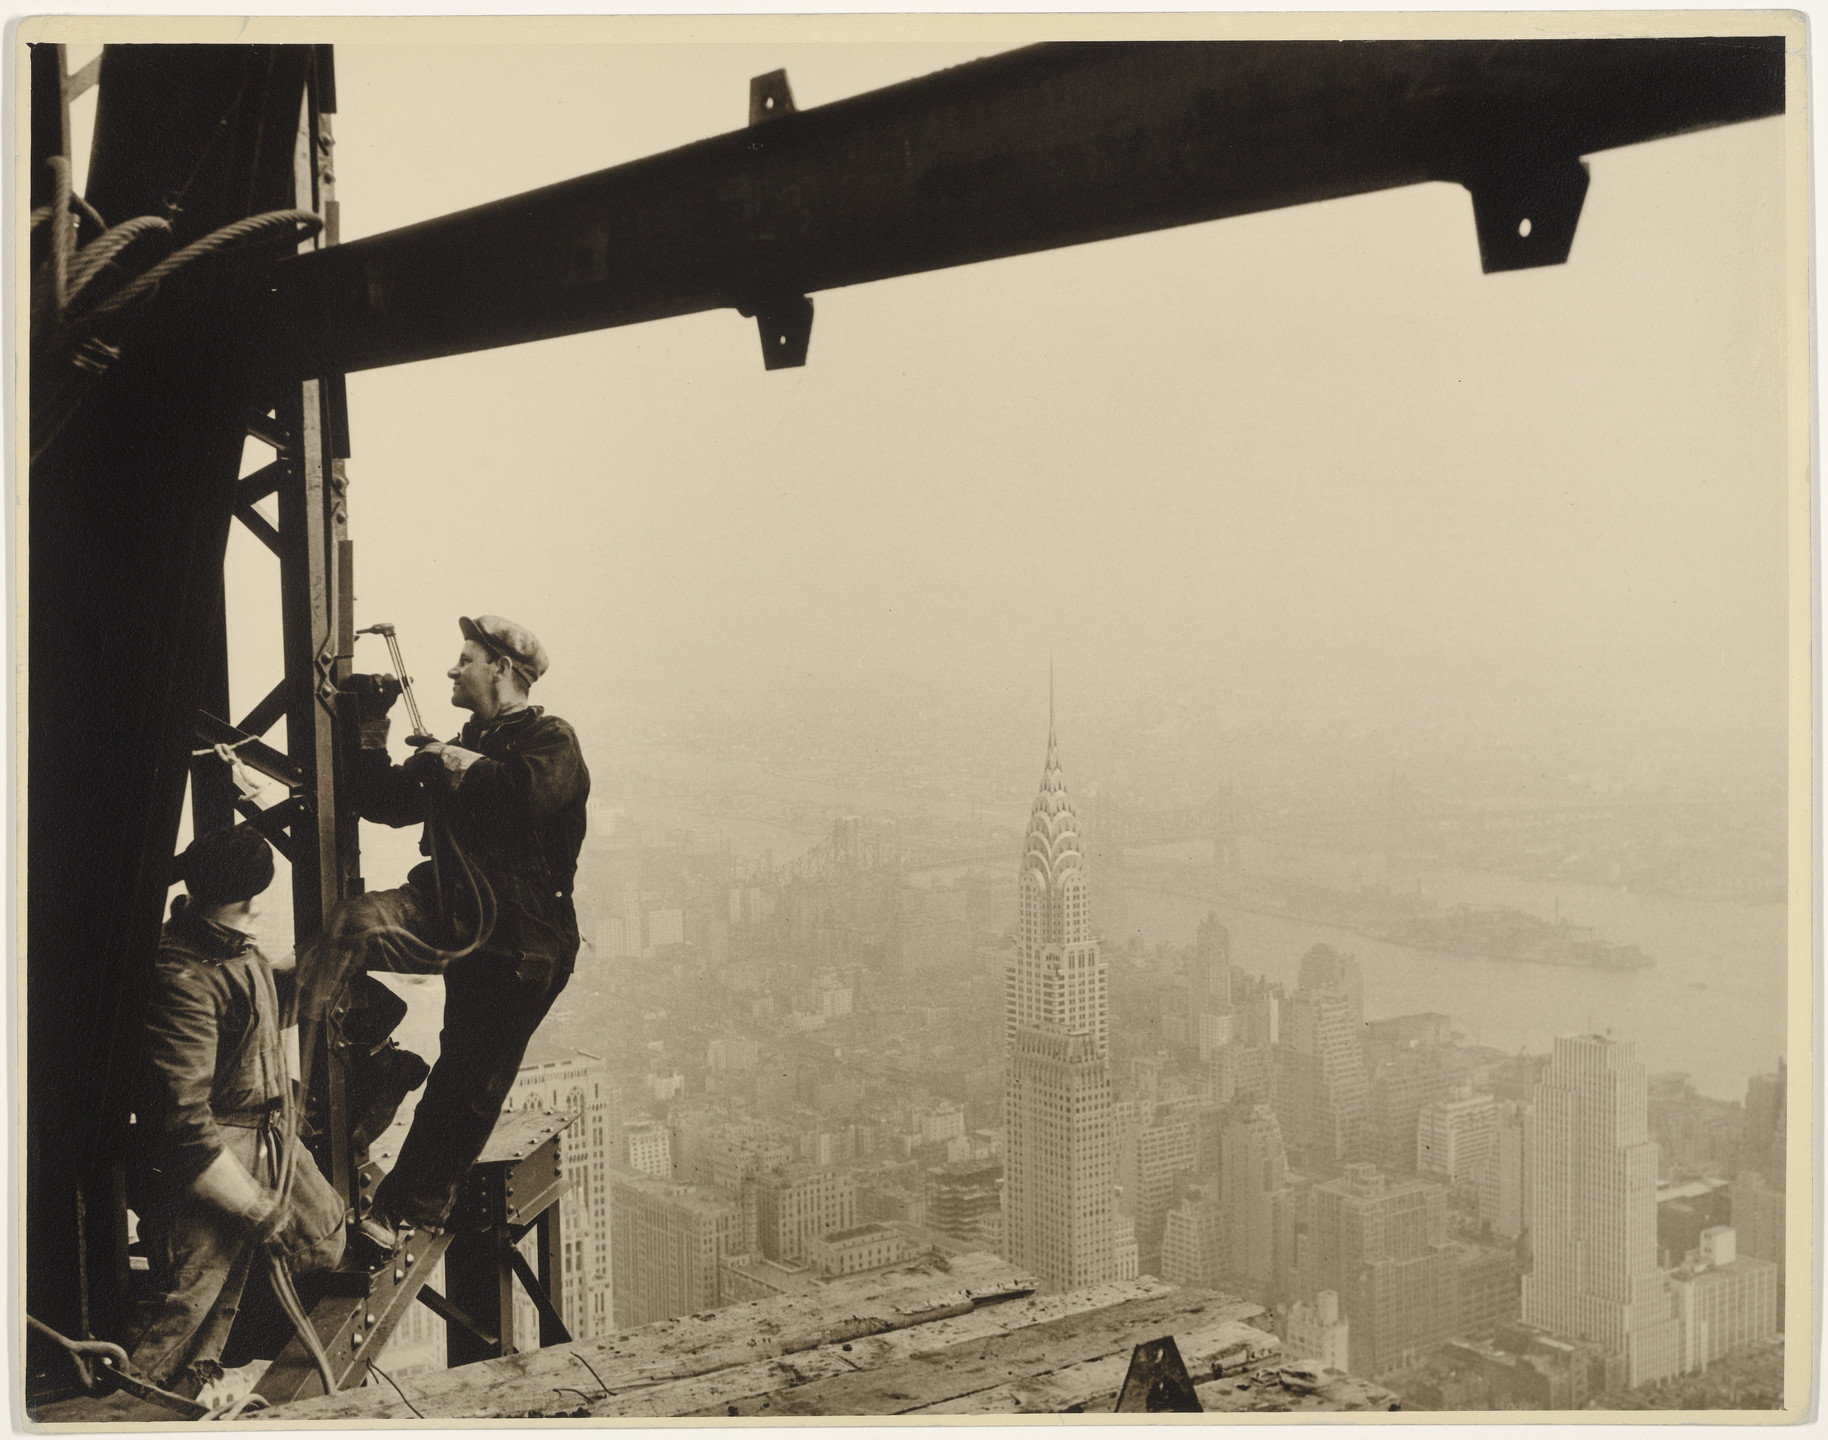 Lewis W. Hine. Welders on the Empire State Building. c. 1930